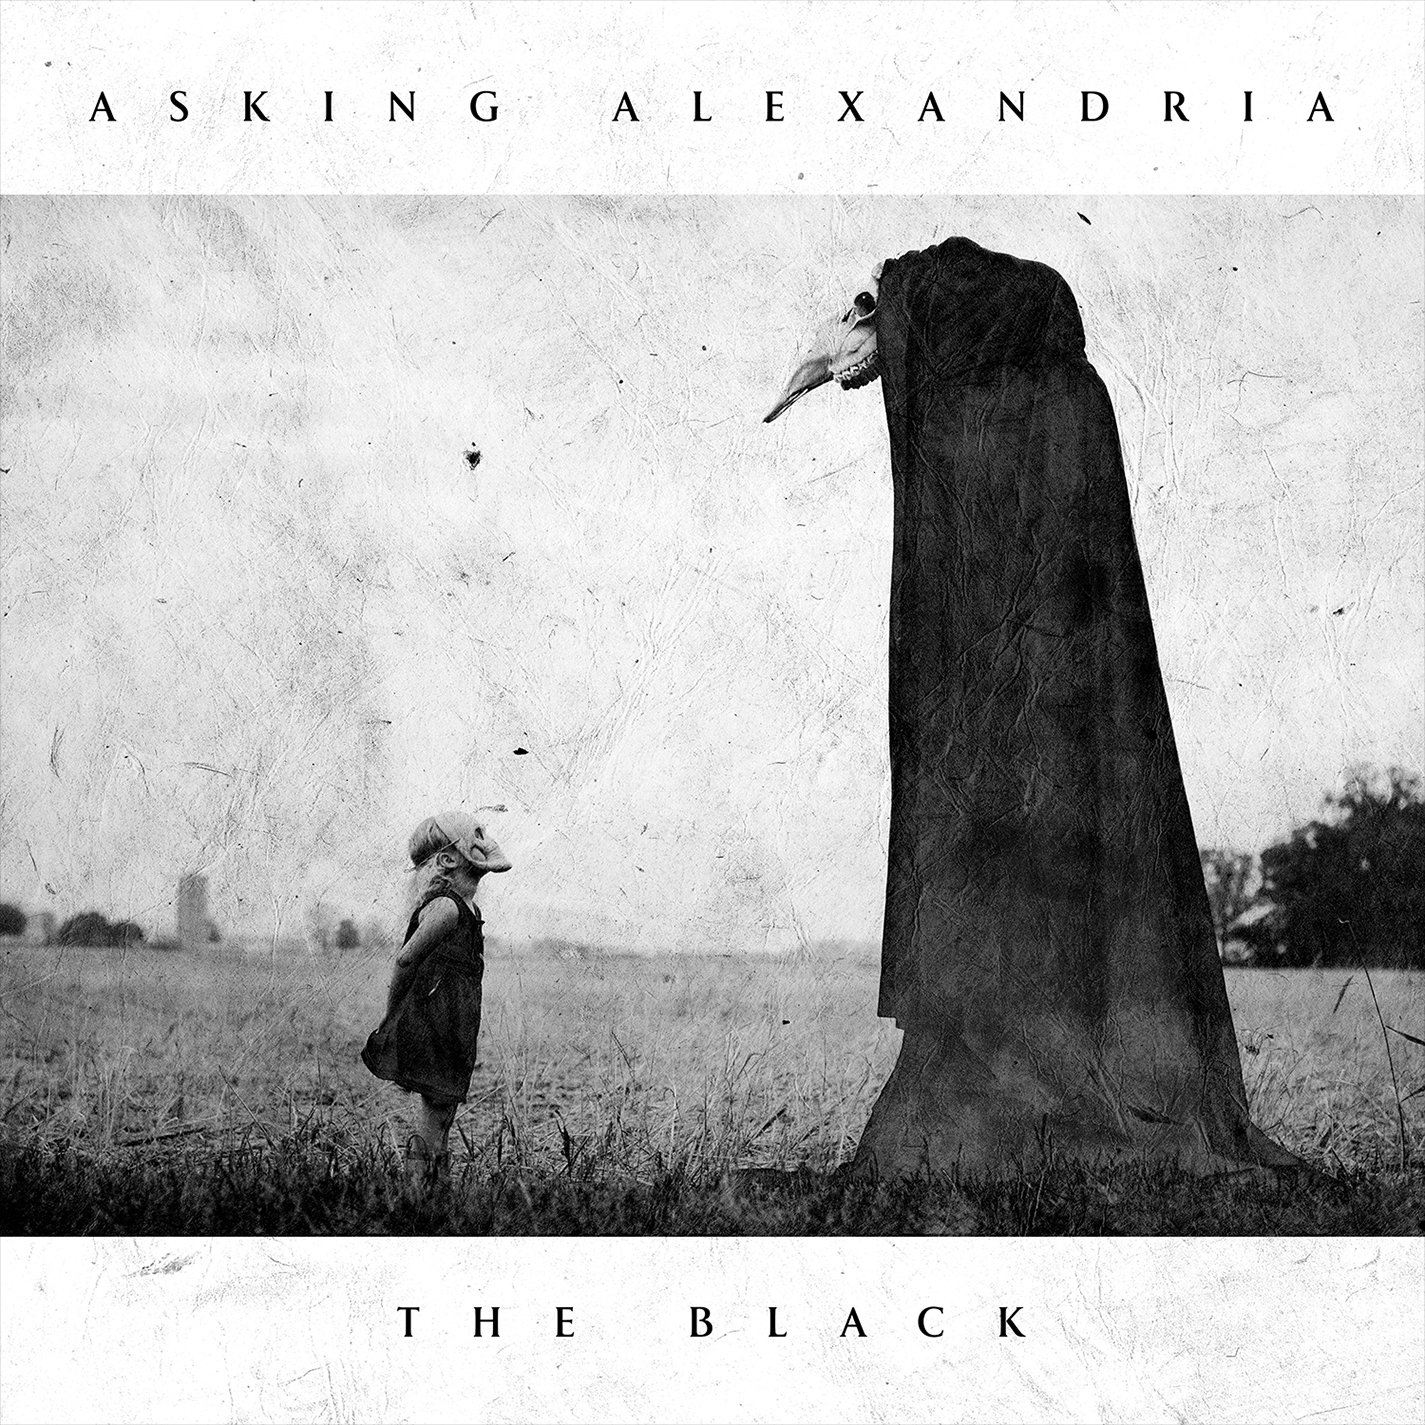 CD : Asking Alexandria - The Black [Explicit Content] (CD)